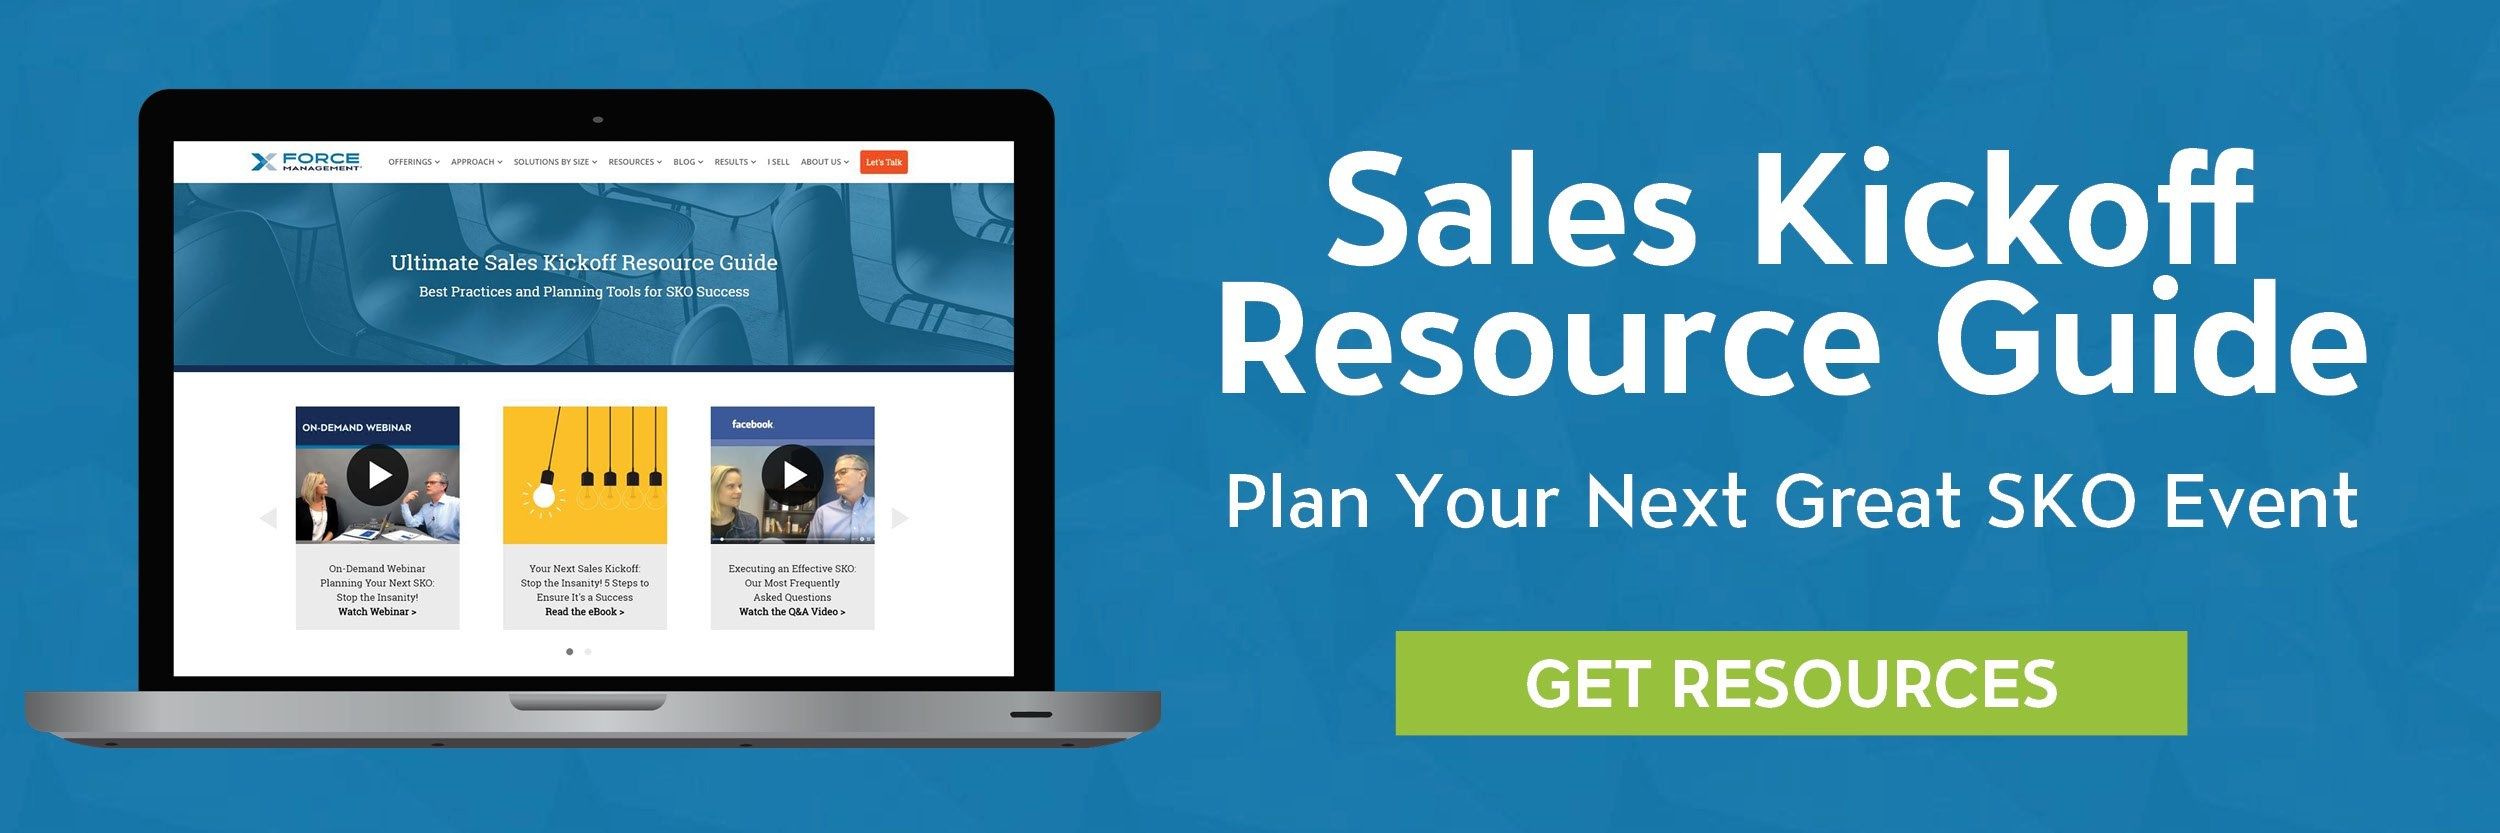 Sales Kickoff Resource Guide